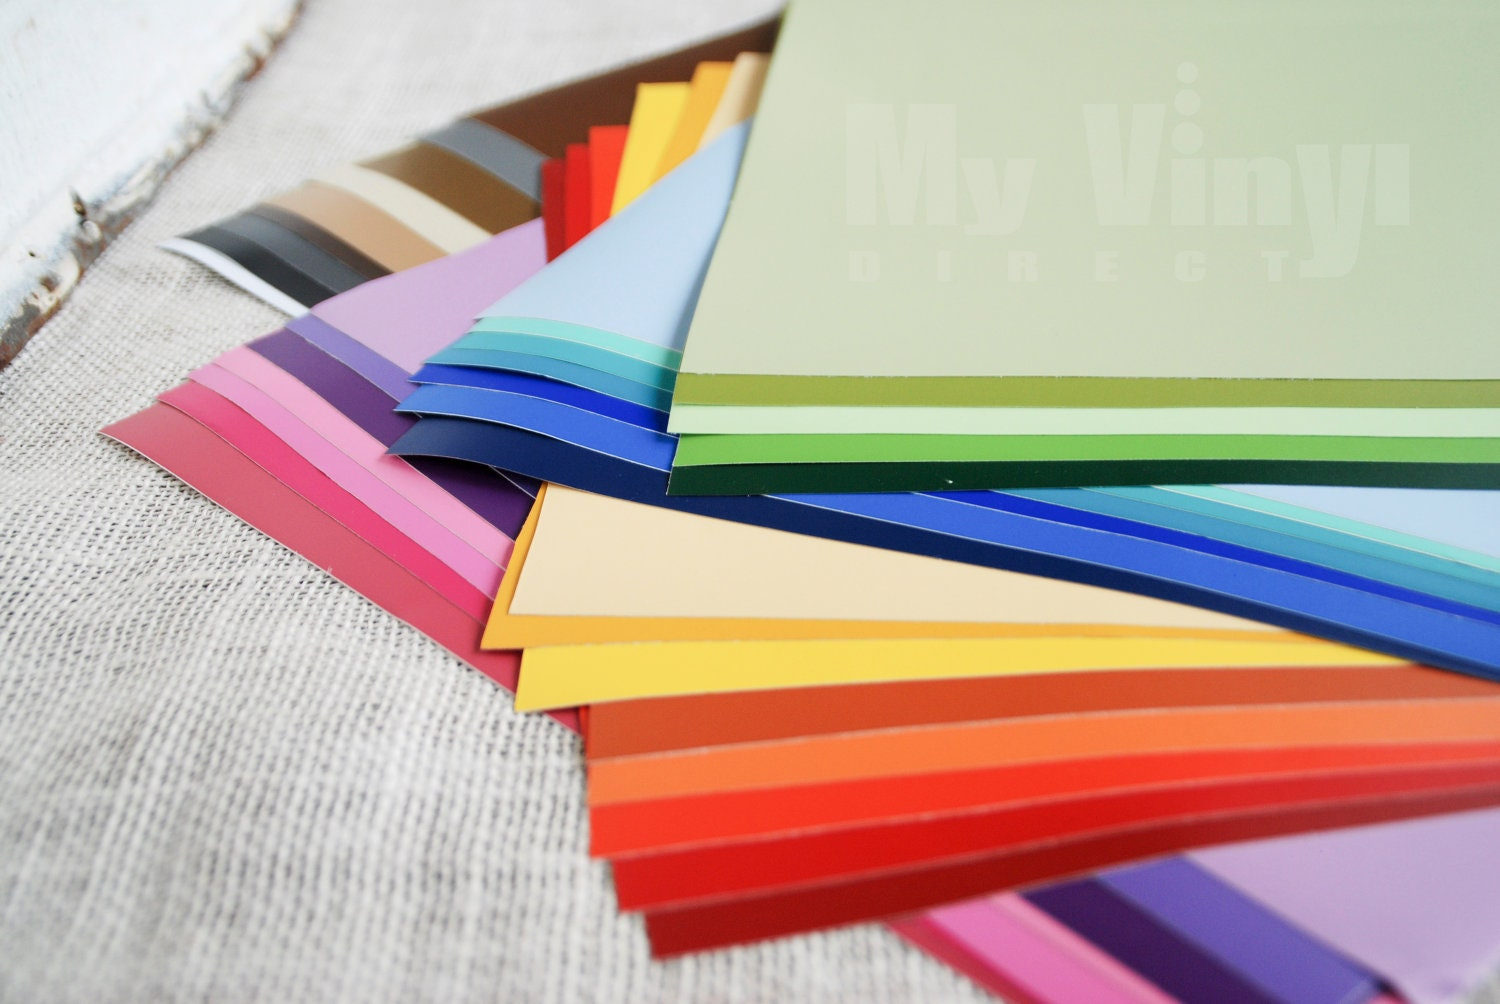 12 X 12 Matte Craft Adhesive Backed Vinyl Sheets By